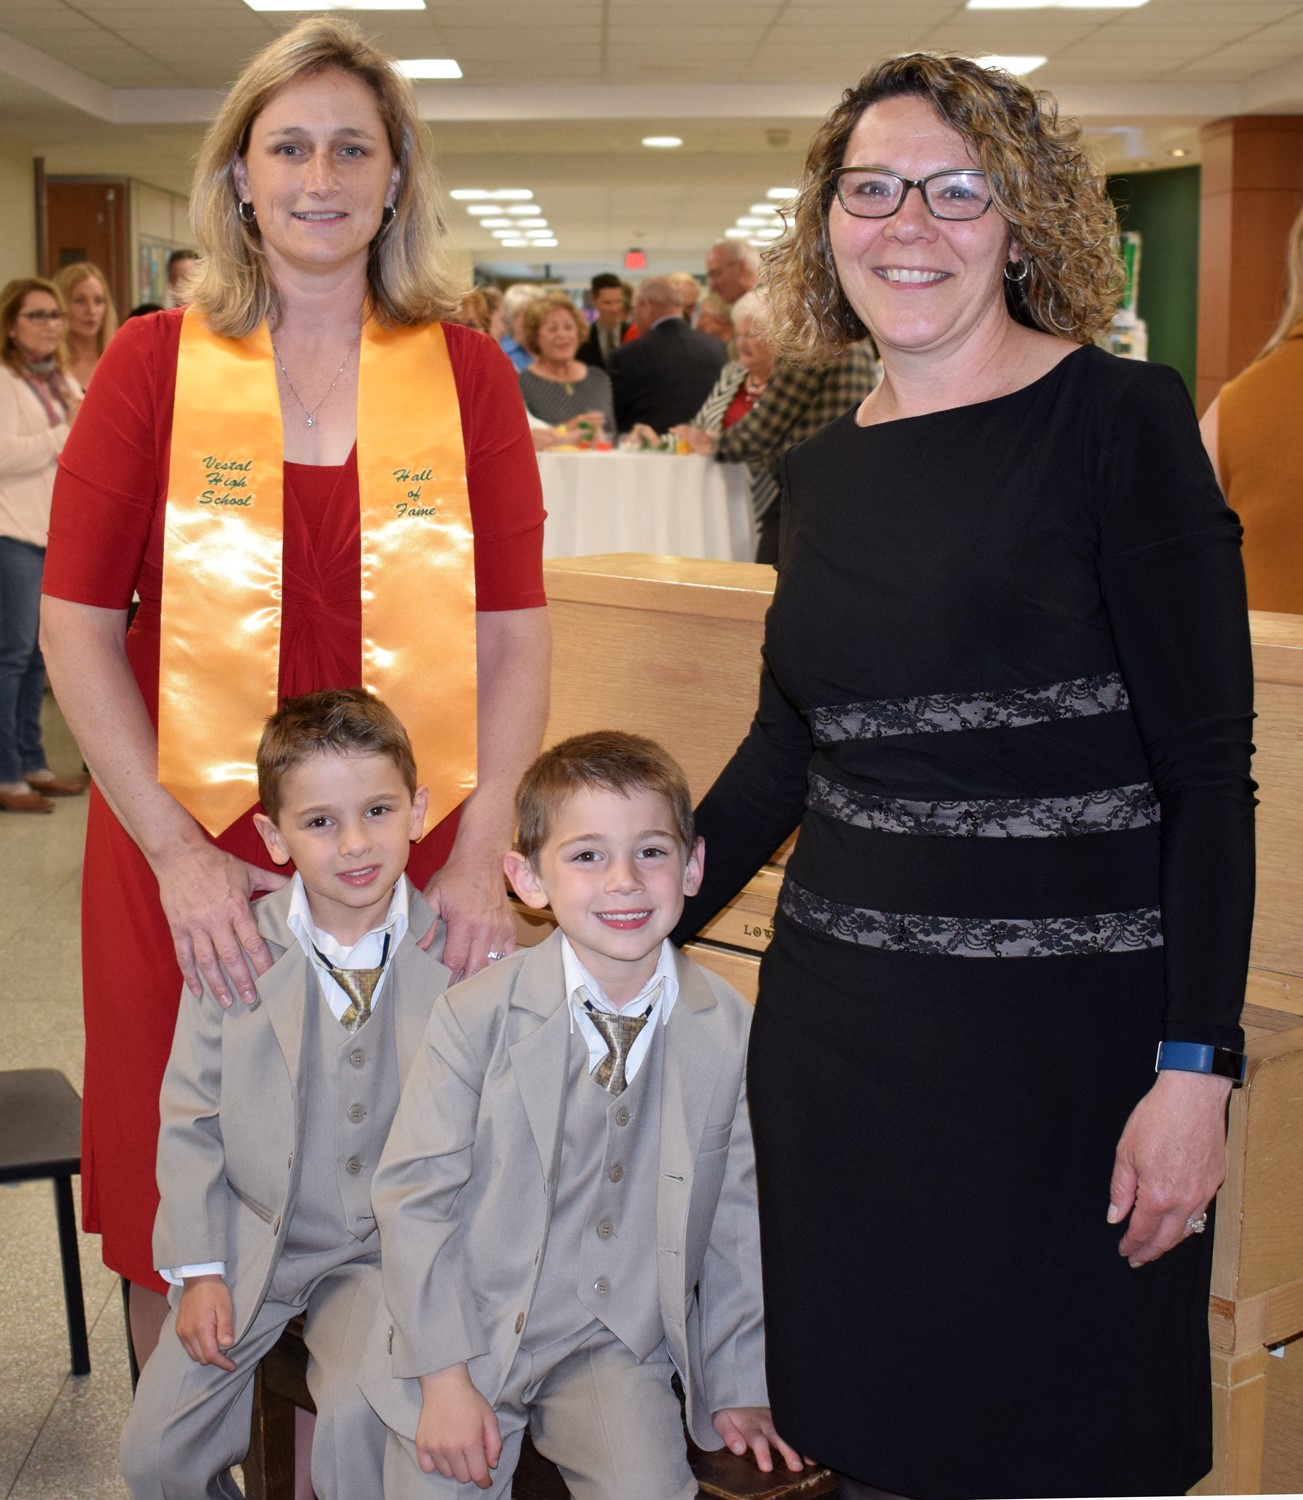 Rachel and Christine Laquidara-Kolvek with their two sons during the reception.